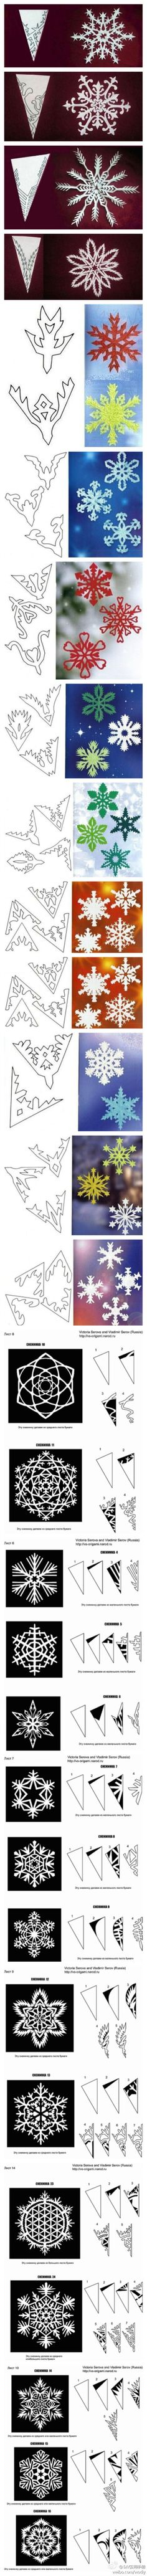 ) – A girl and a glue gun, kid craft monday (snowflakes!) – A girl and a glue gun, Related posts: kid craft monday (snowflakes!) – A girl and a glue gun Creative Ideas – DIY Beautiful Melted Crayon Art Using … Noel Christmas, Winter Christmas, All Things Christmas, Xmas, Christmas Snowflakes, Christmas Paper, Winter Fun, Christmas Photos, Christmas Ideas